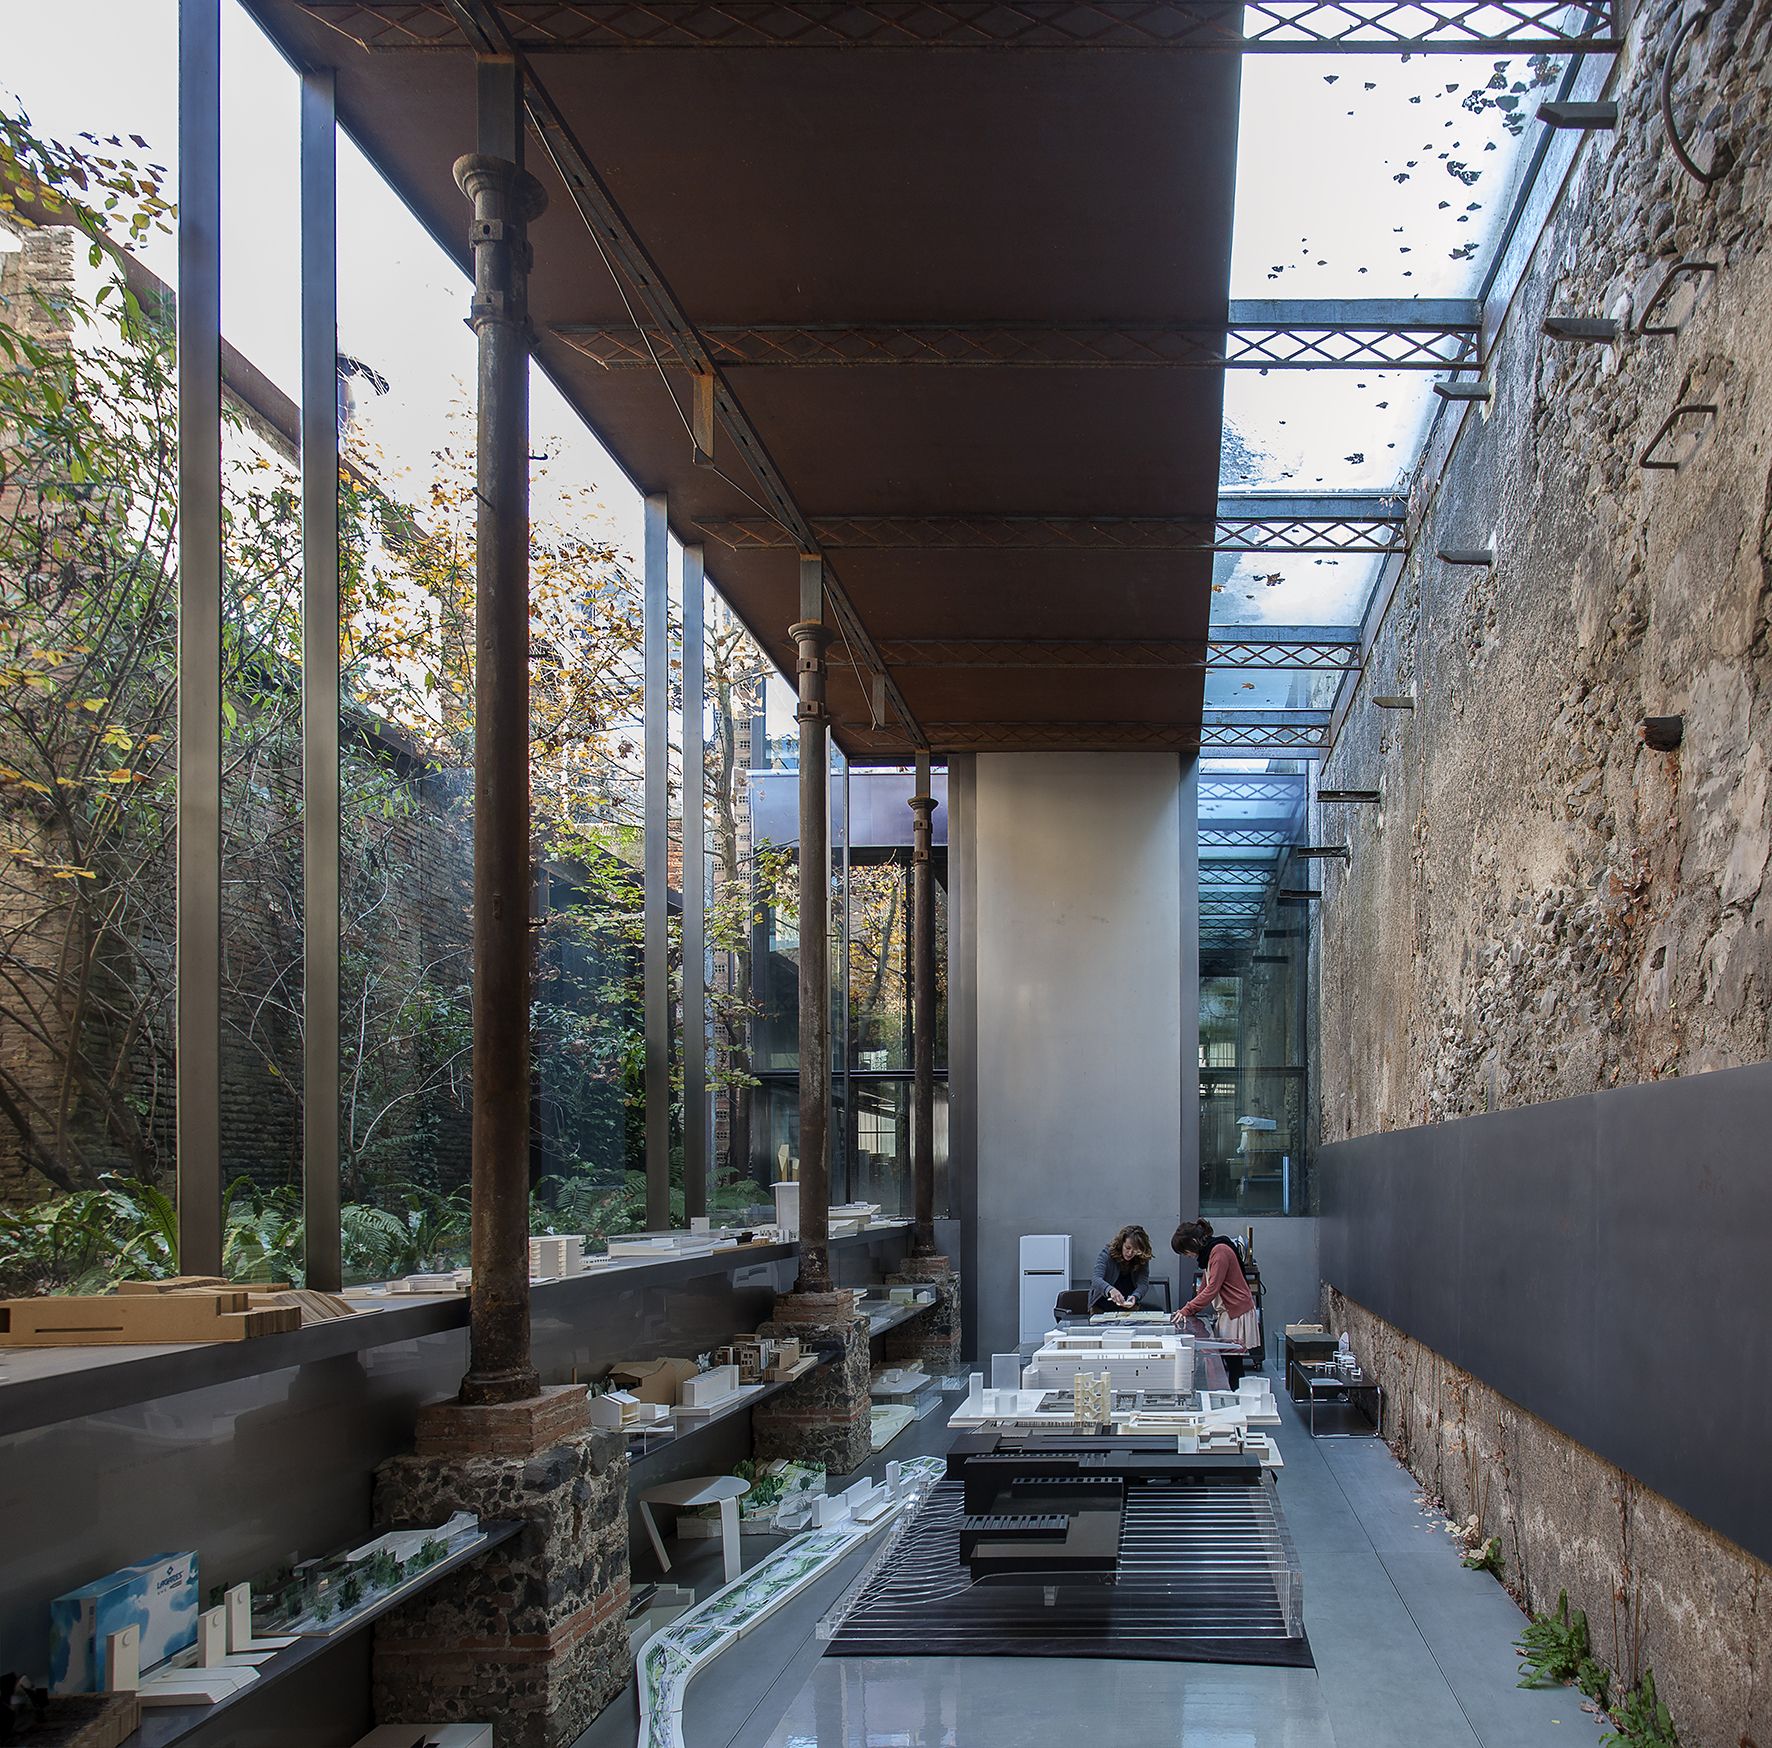 Espai Barbieri, RCR Architects Studio. ©Hisao Suzuki